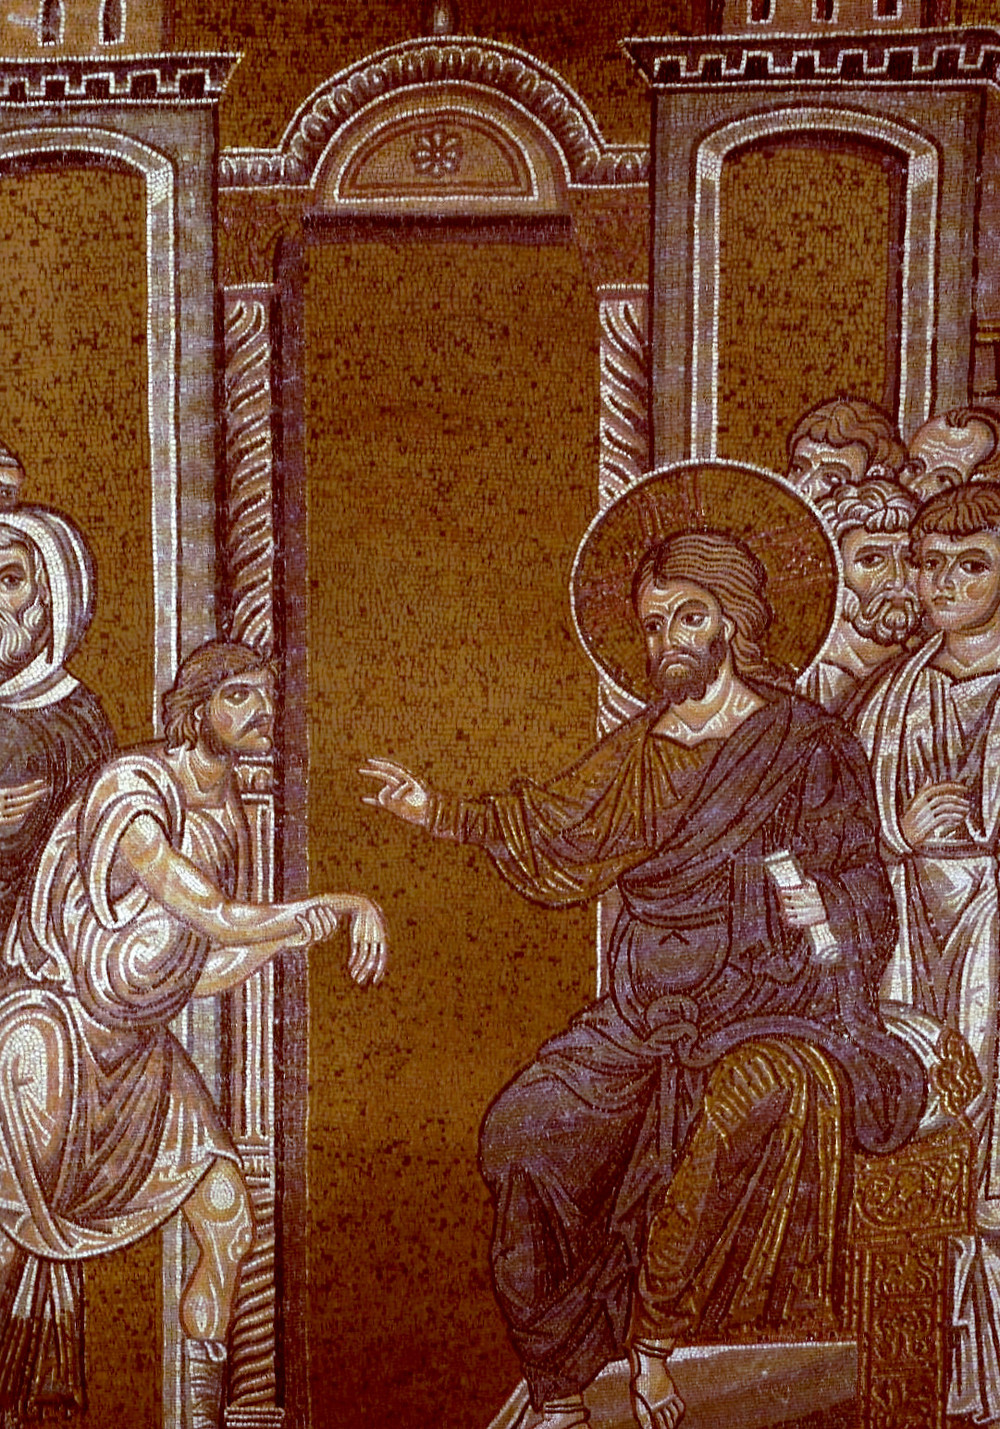 Christ heals the man with paralyzed hand. Byzantine mosaic in the Cathedral of Monreale. Photo by Sibeaster, 2008 [Public domain], from Wikimedia Commons.